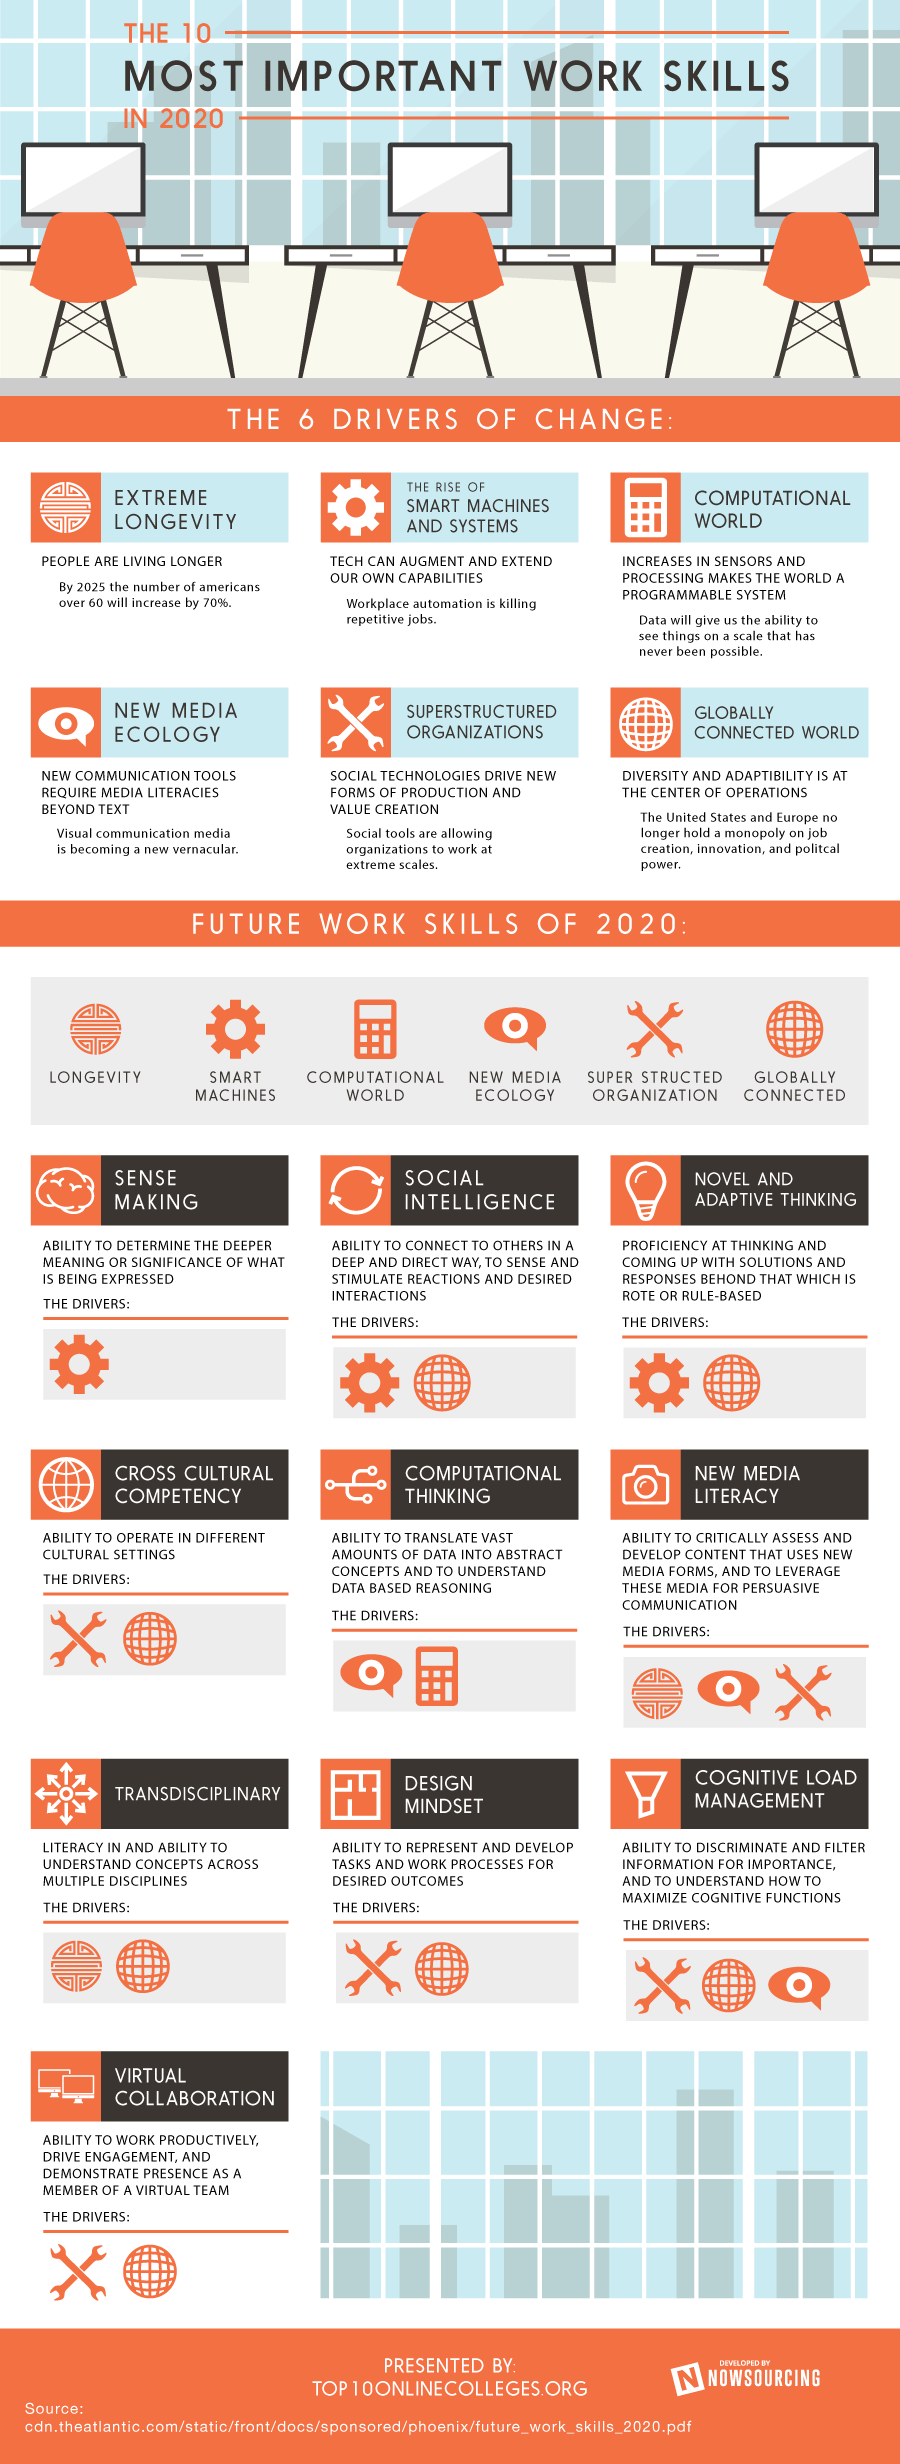 the future of work skills you will need to be successful the future of work 10 skills you will need to be successful infographic